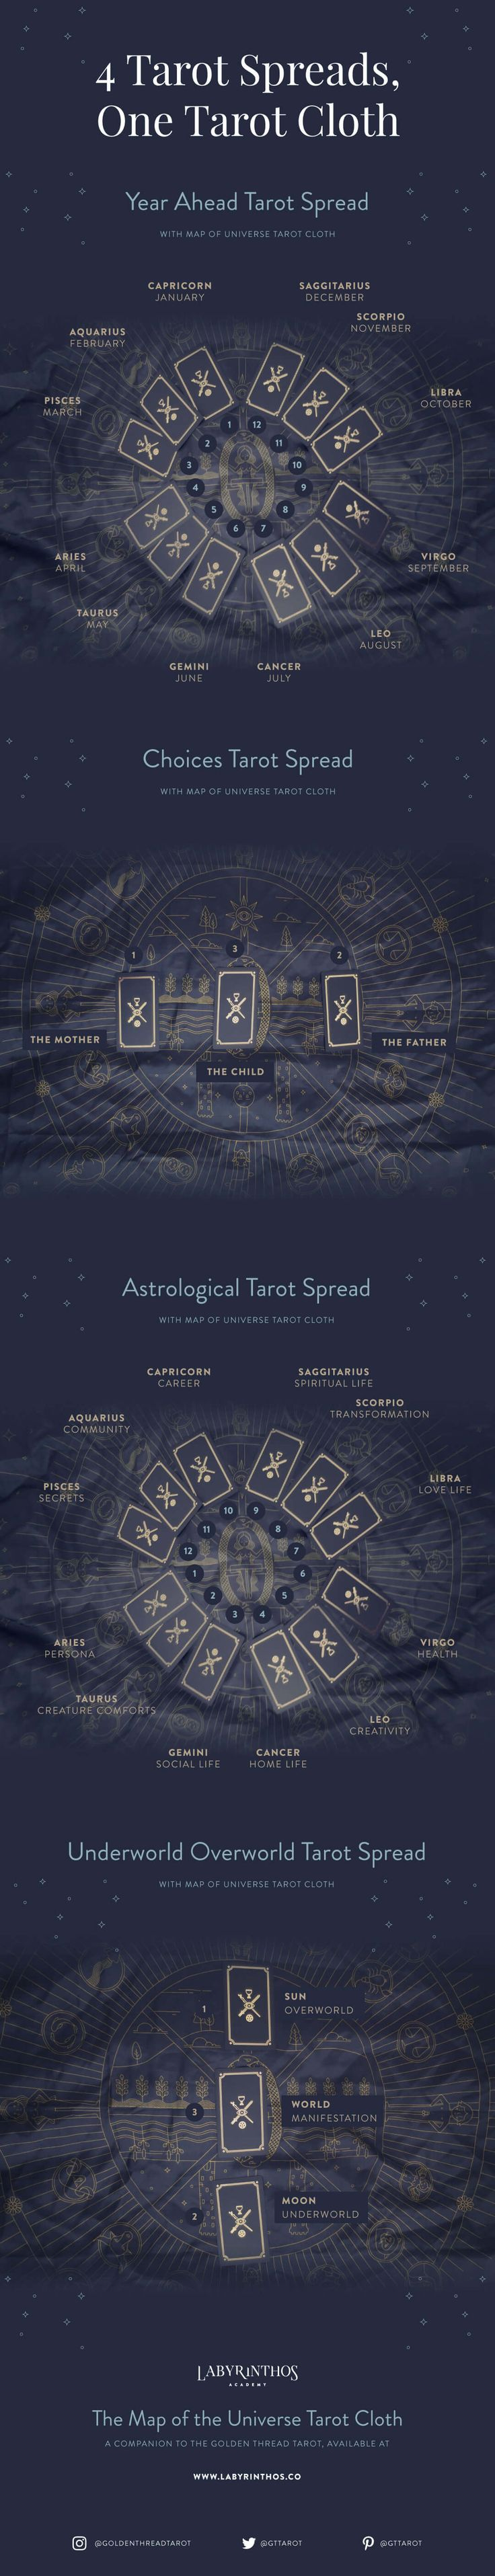 Some examples of the tarot spreads you can create on the Golden Thread Tarot Cloth. These are just examples - be creative and experiment with the symbols!